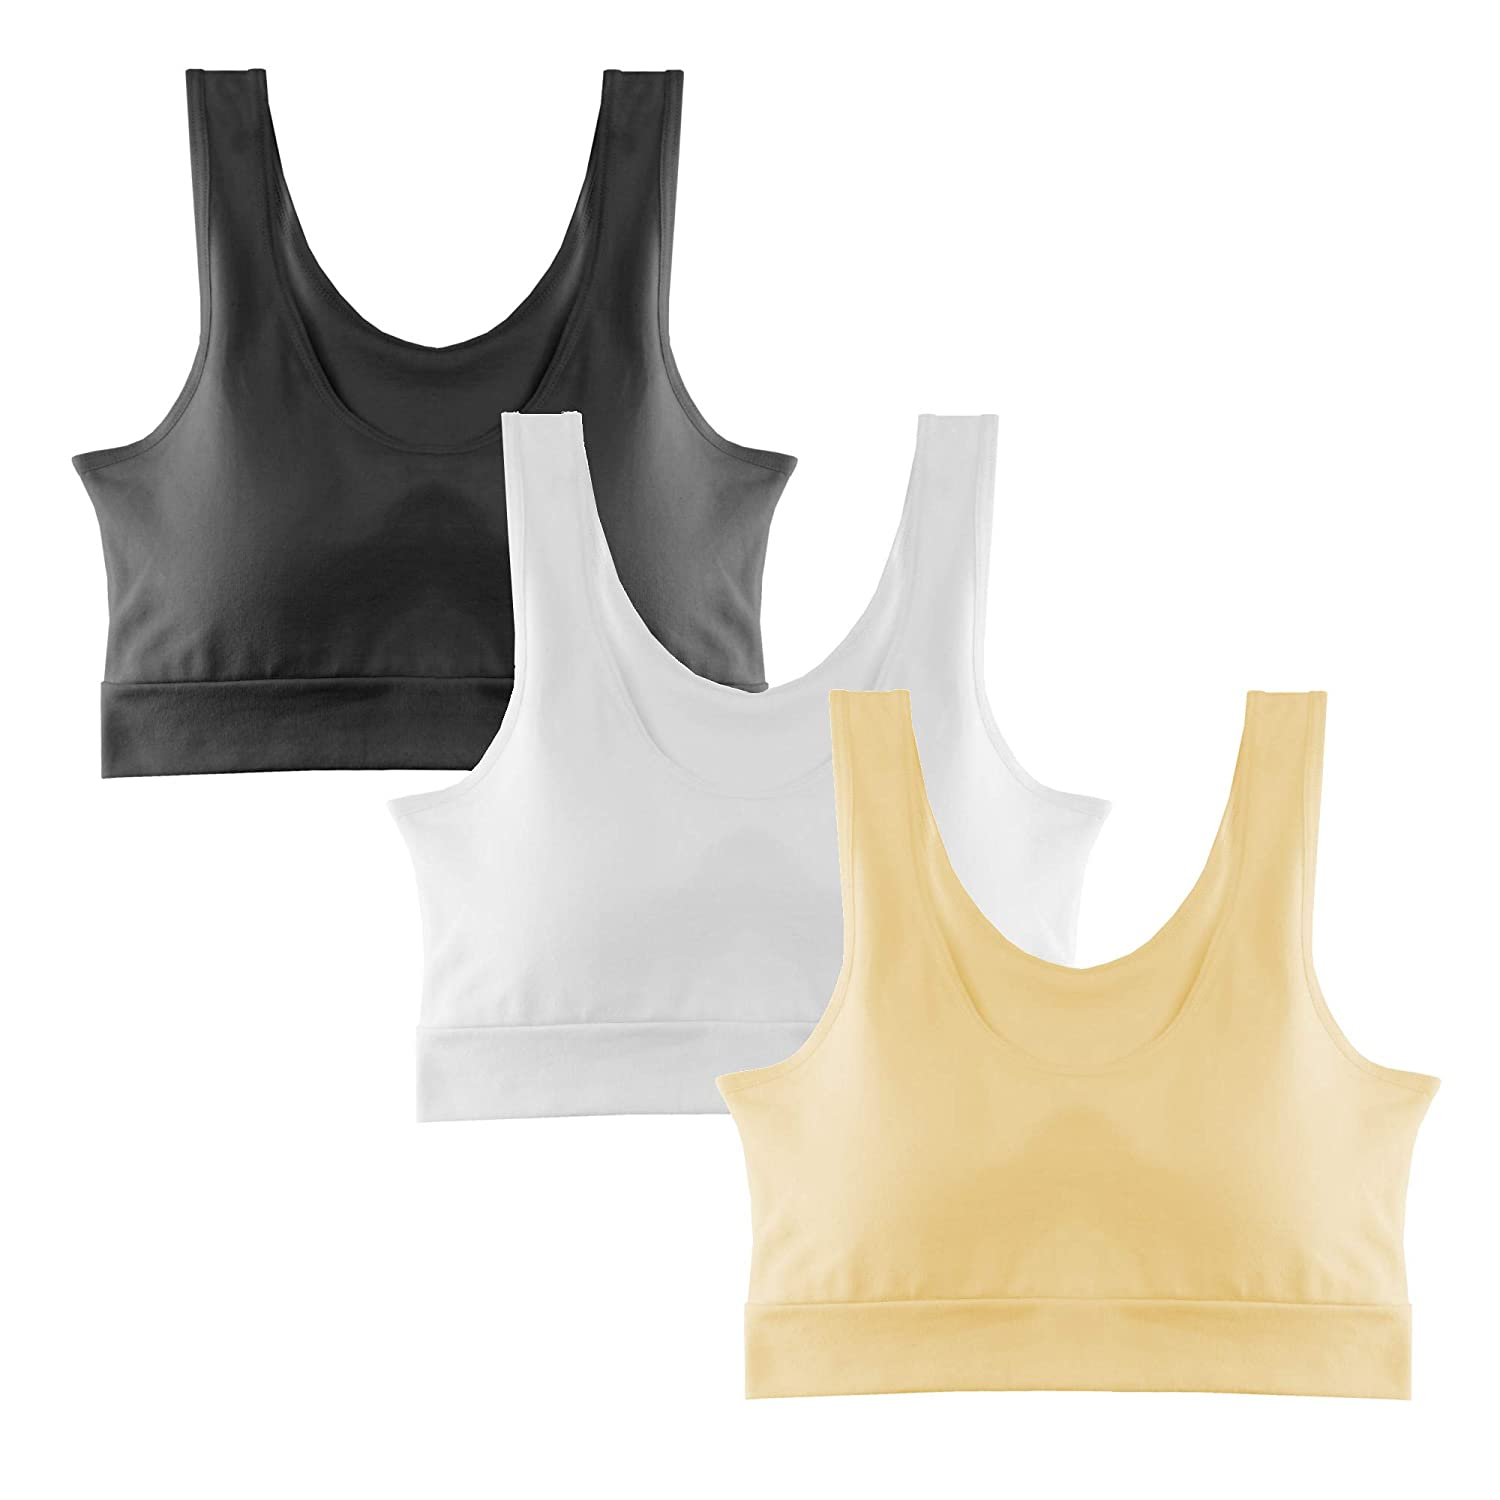 Popular Girl's Cotton Sports Bra Removable Padding - 3 Pack POP-AB998A